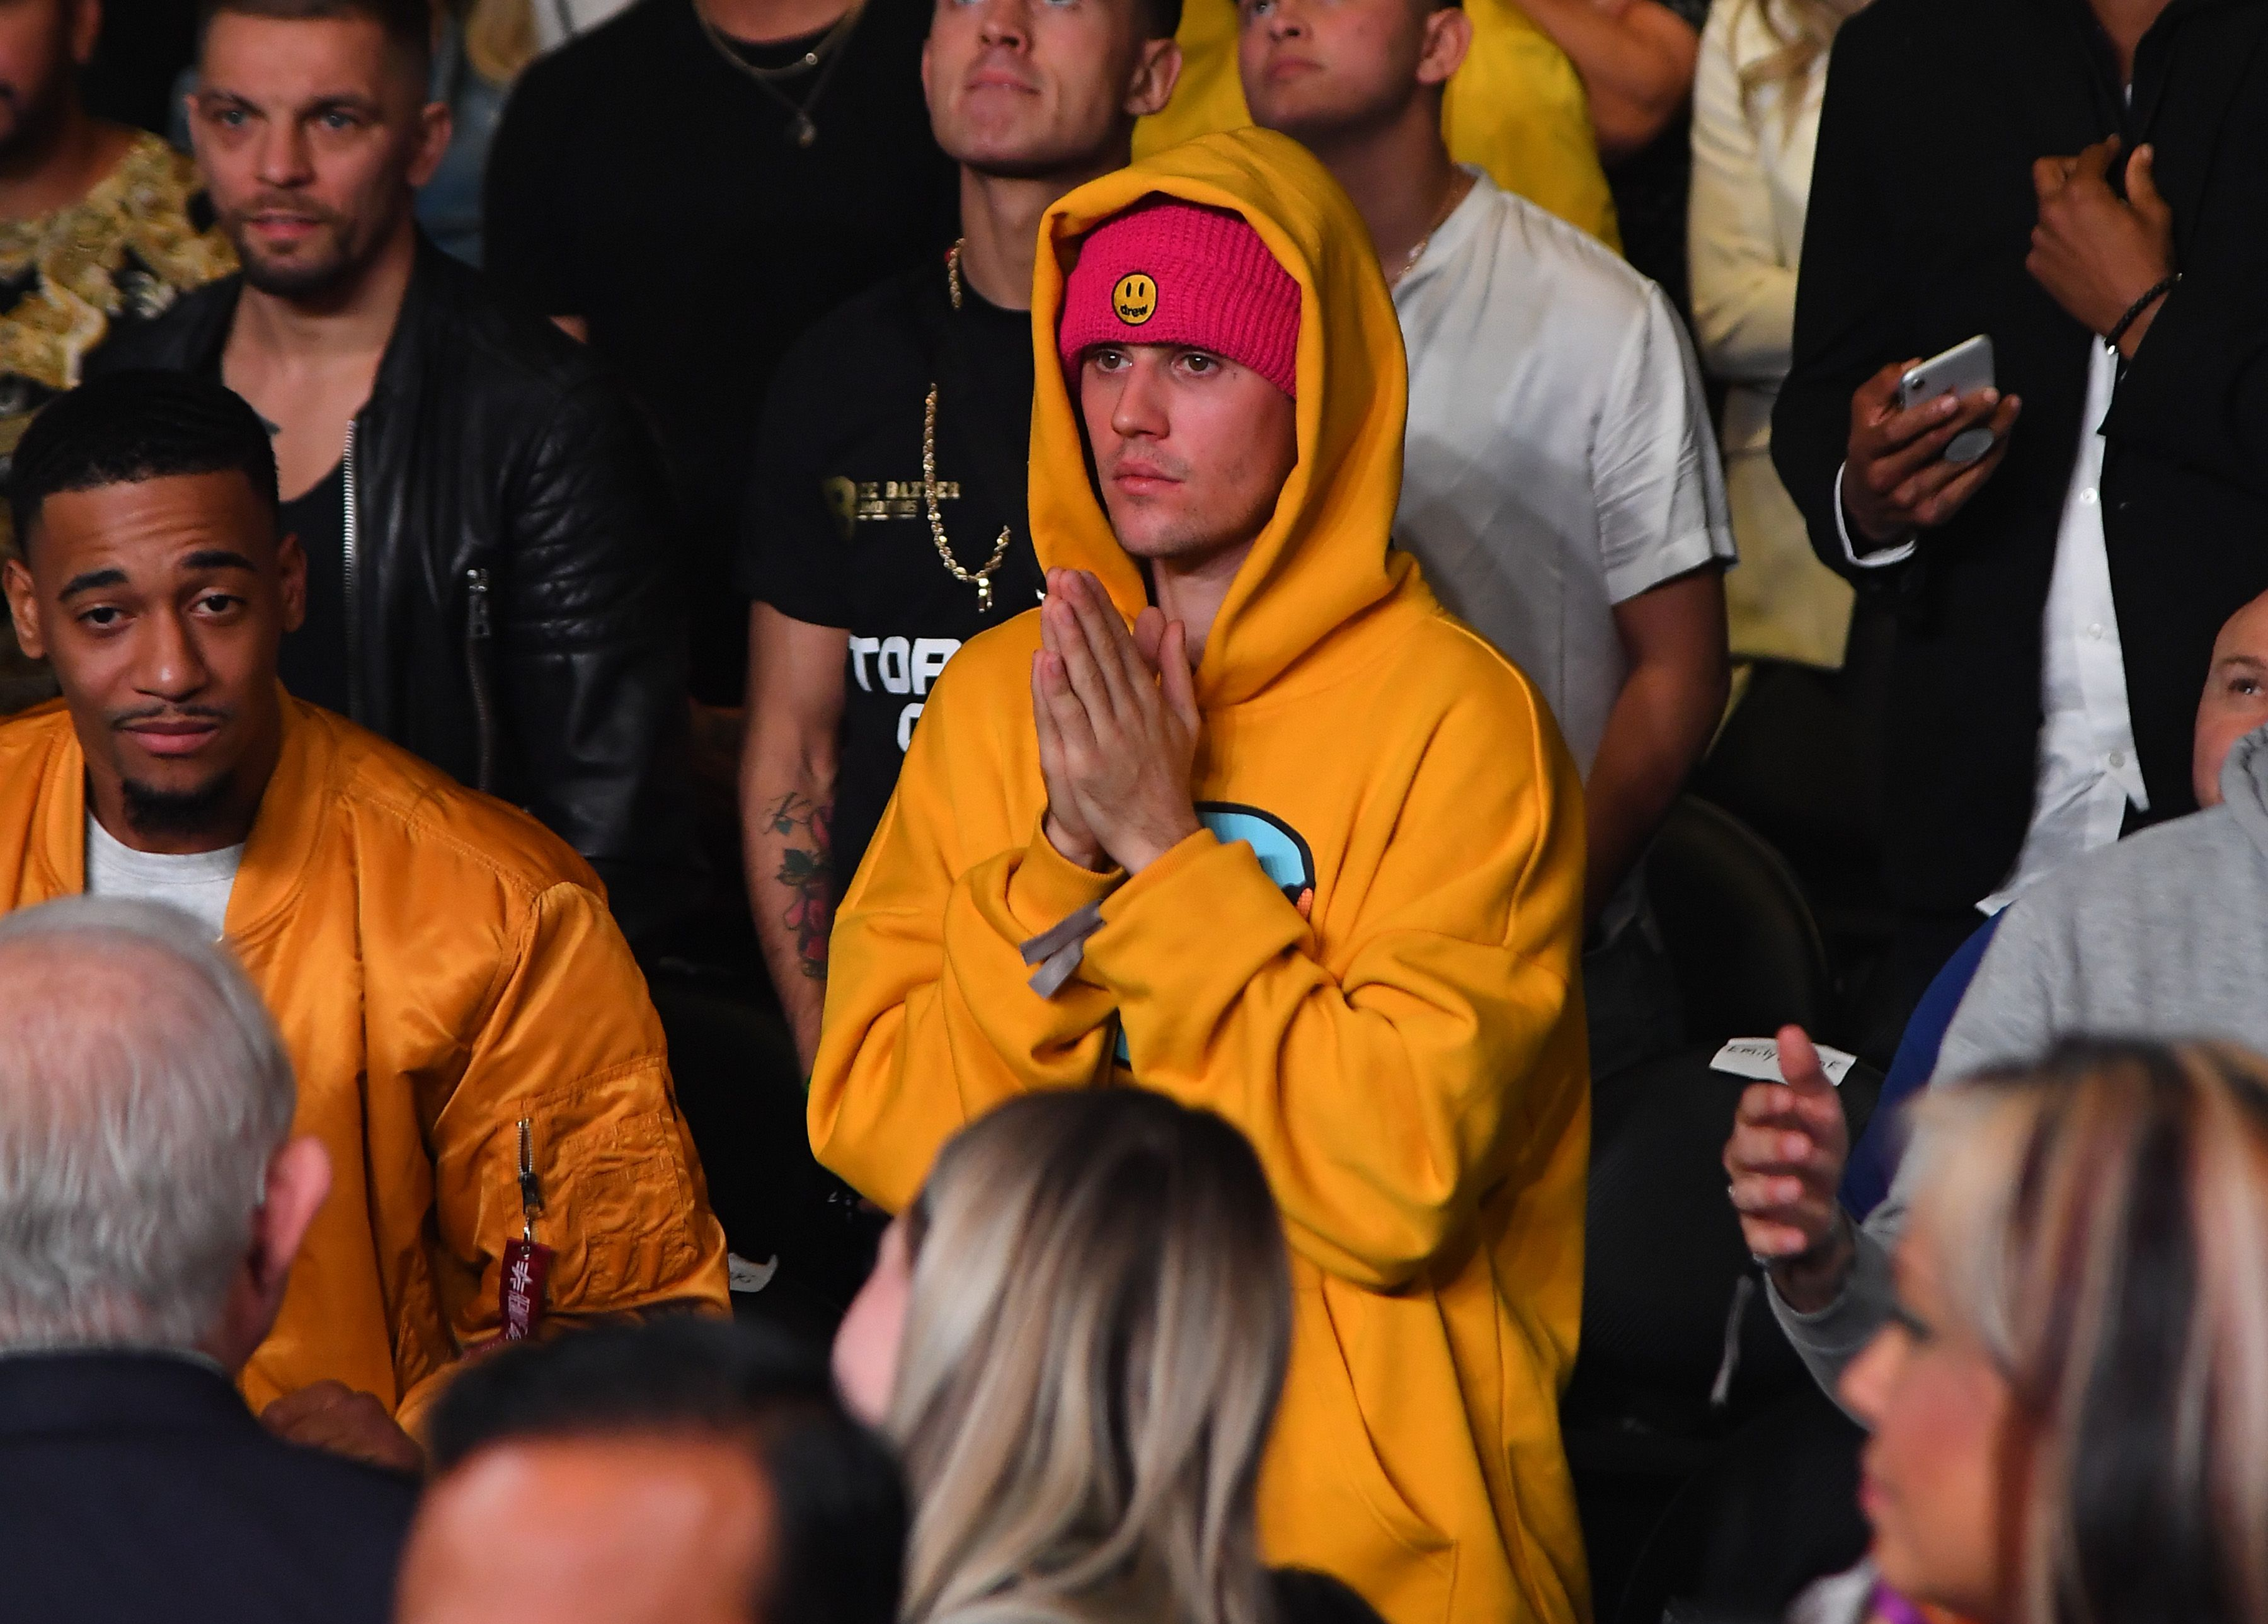 Justin Bieber slams trolling of his appearance as he reveals Lyme disease diagnosis